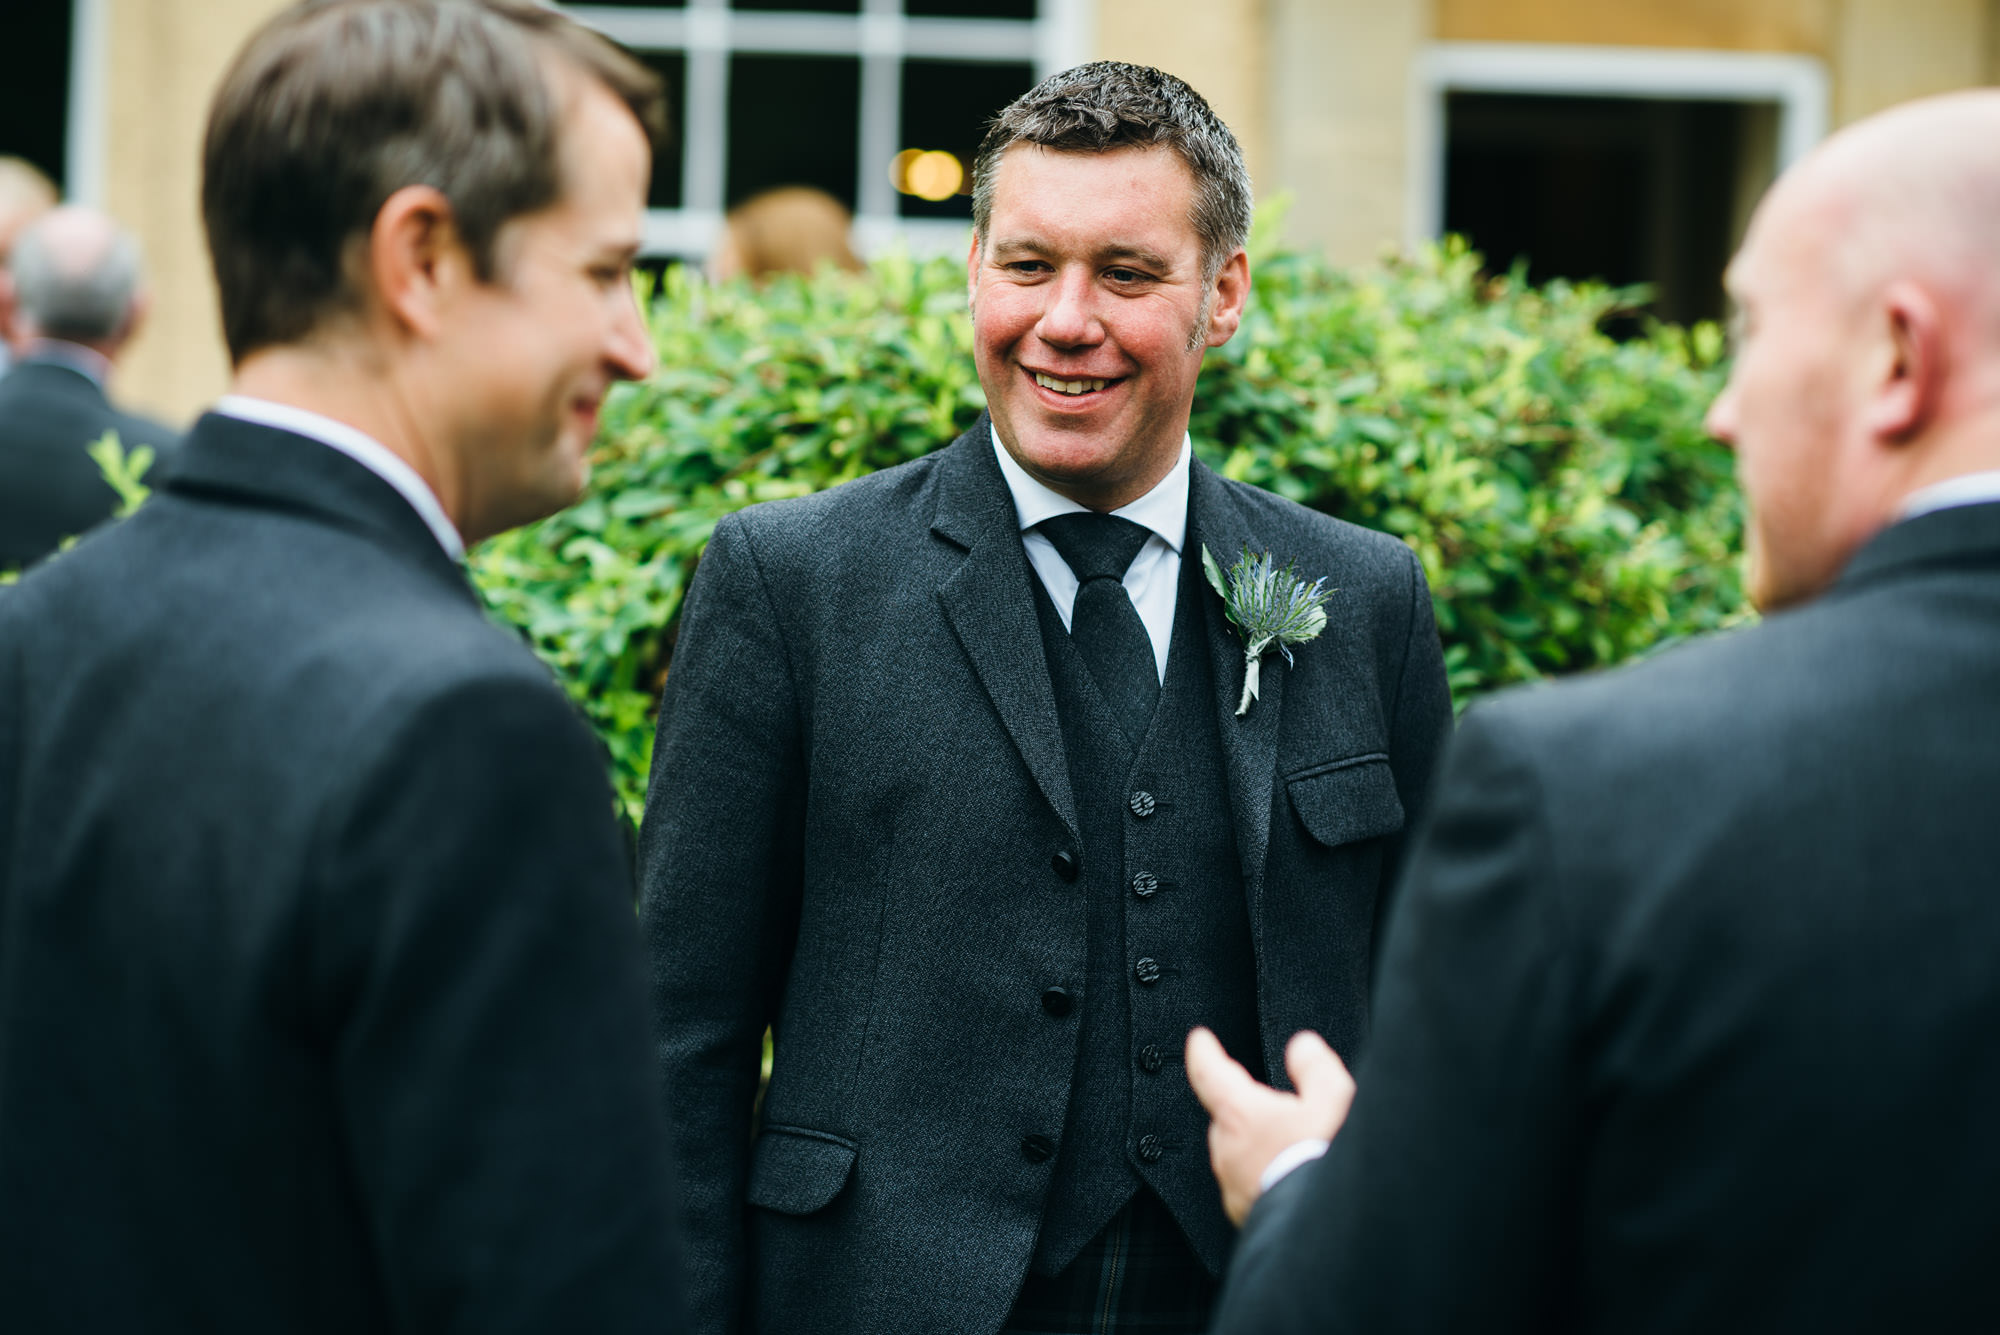 Tonedale house wedding